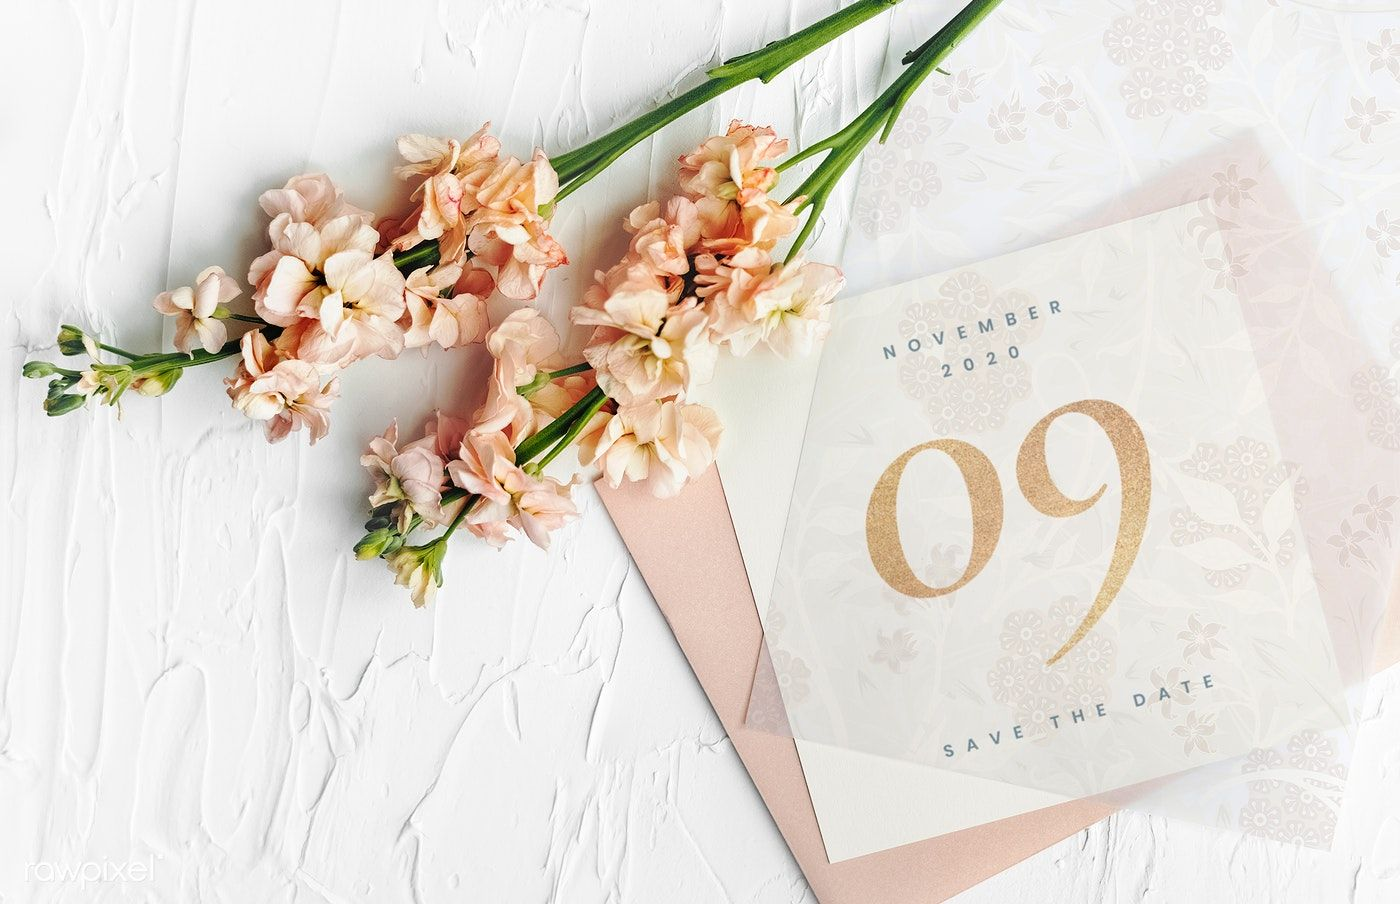 Download premium psd of Wedding invitation card mockup